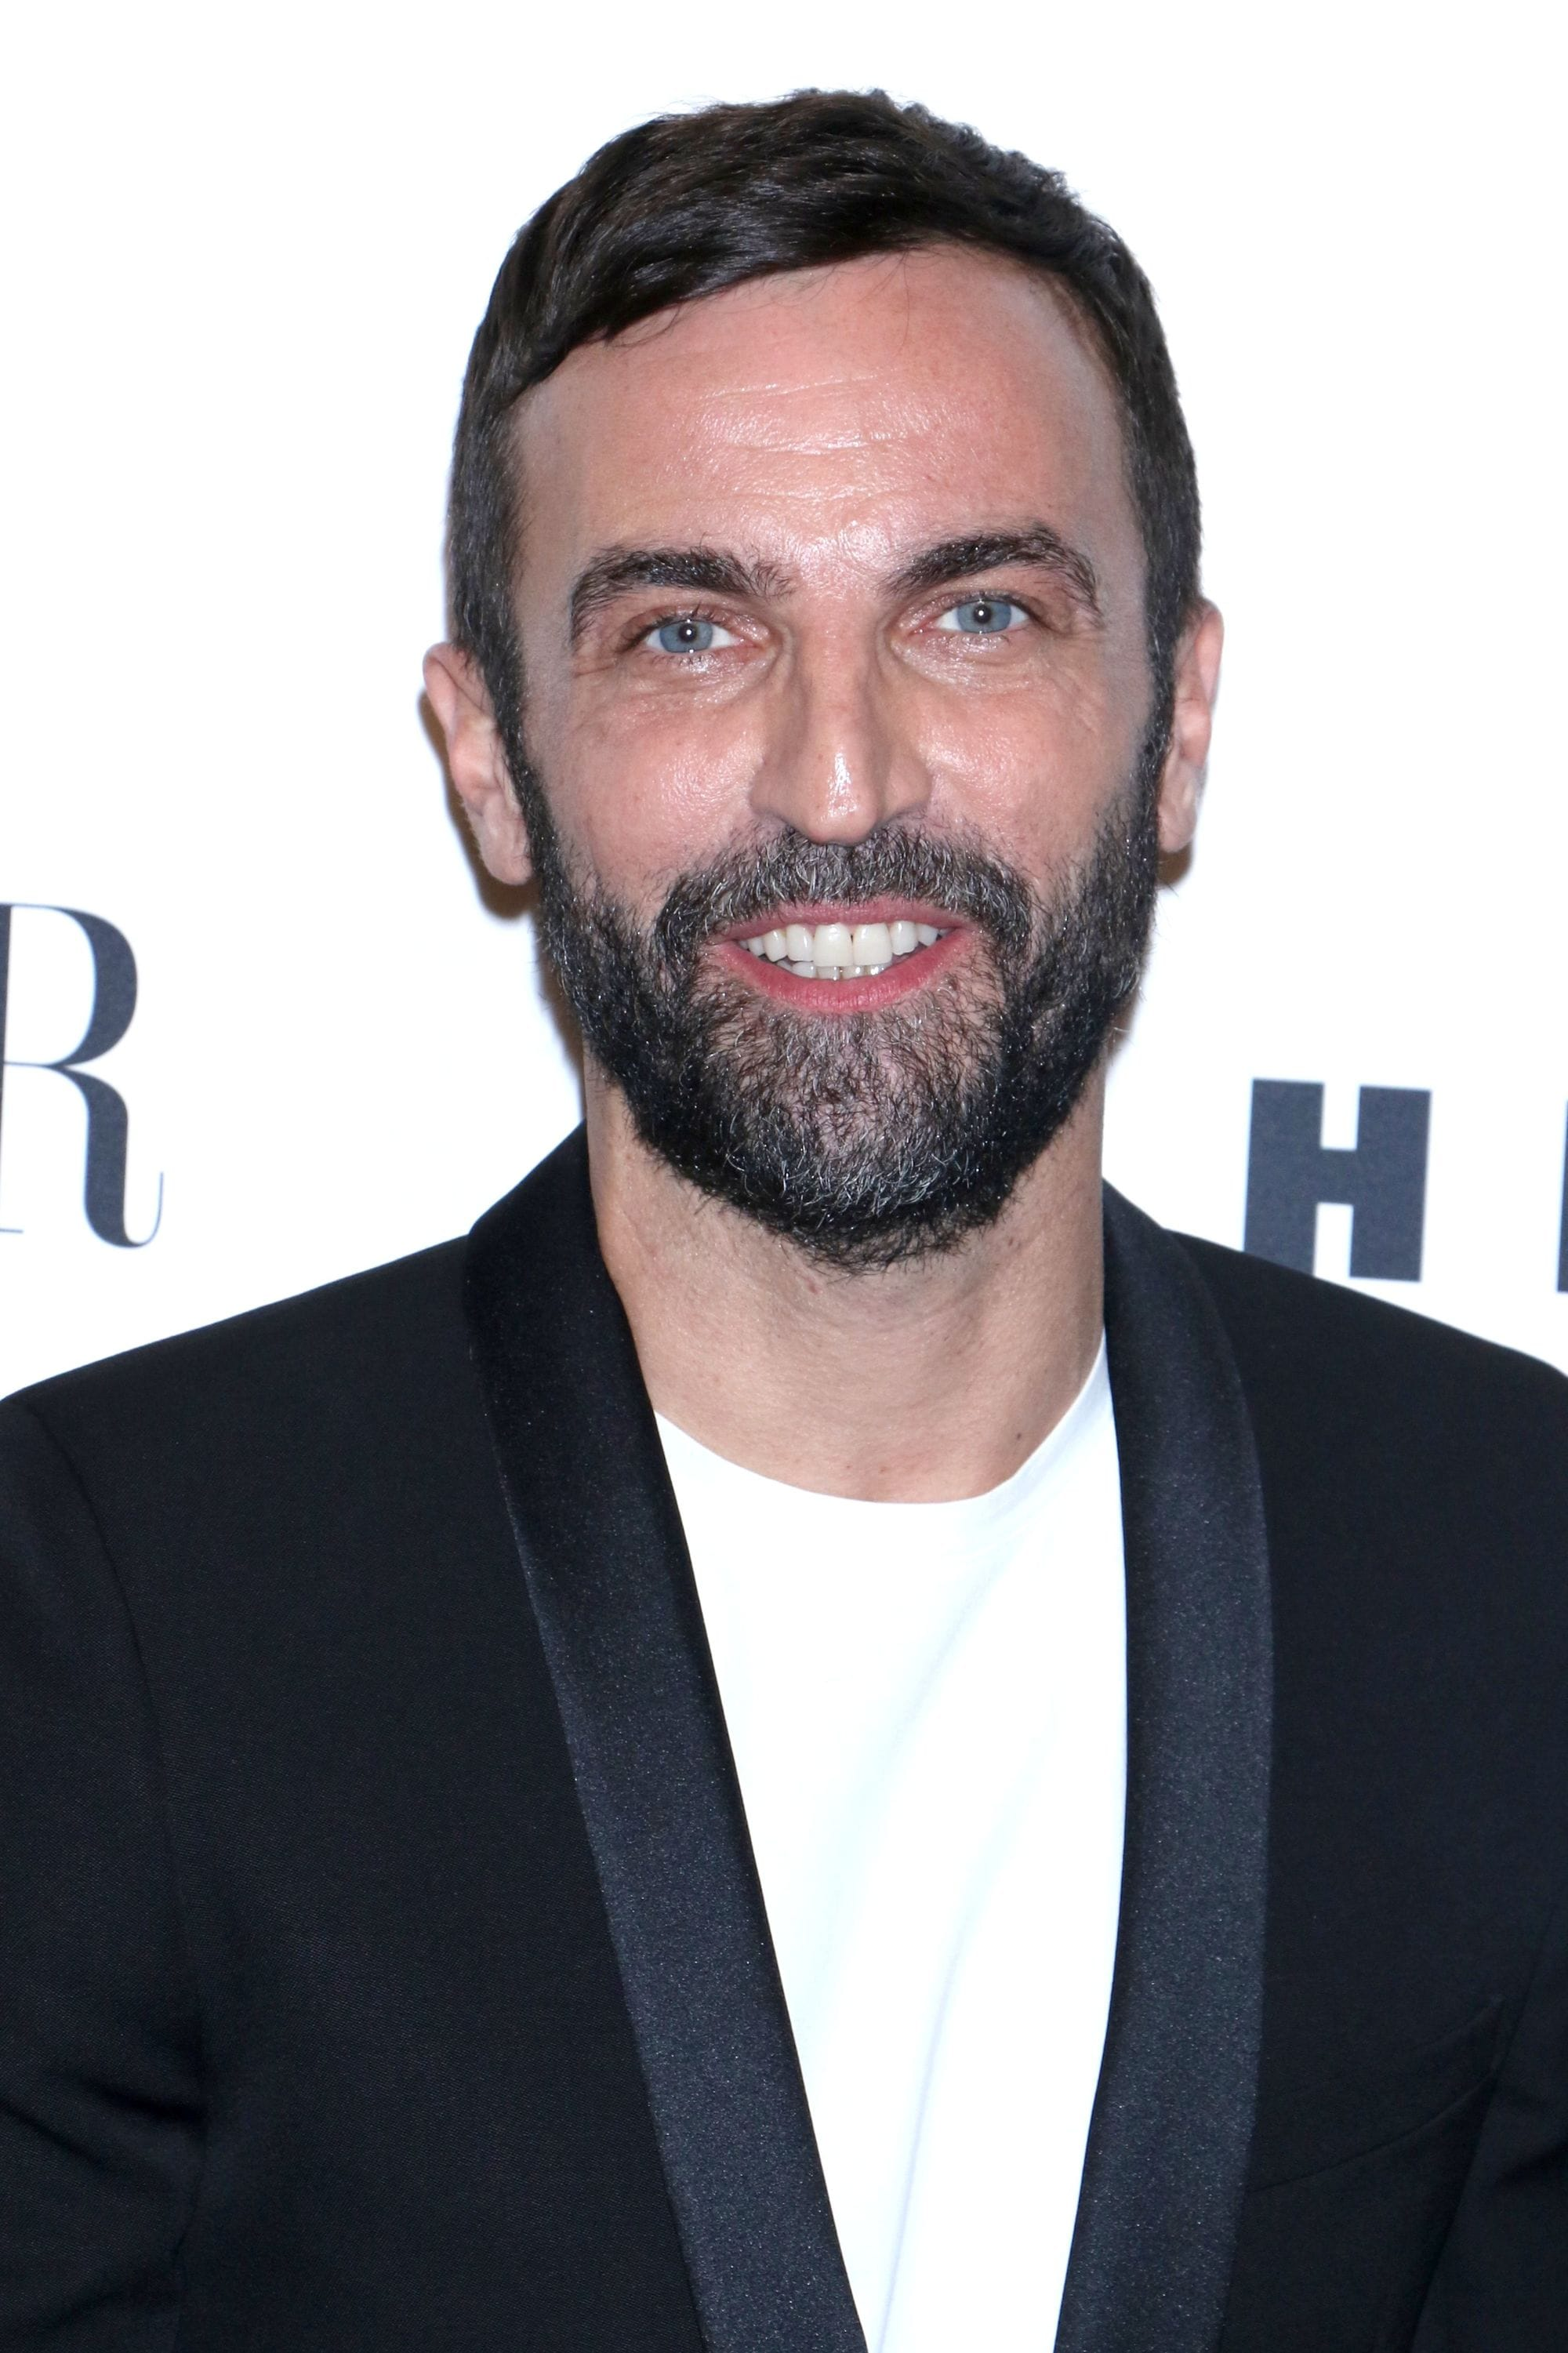 Hairstyles for men with thin hair: Nicolas Ghesquiere with short dark hair and a comb